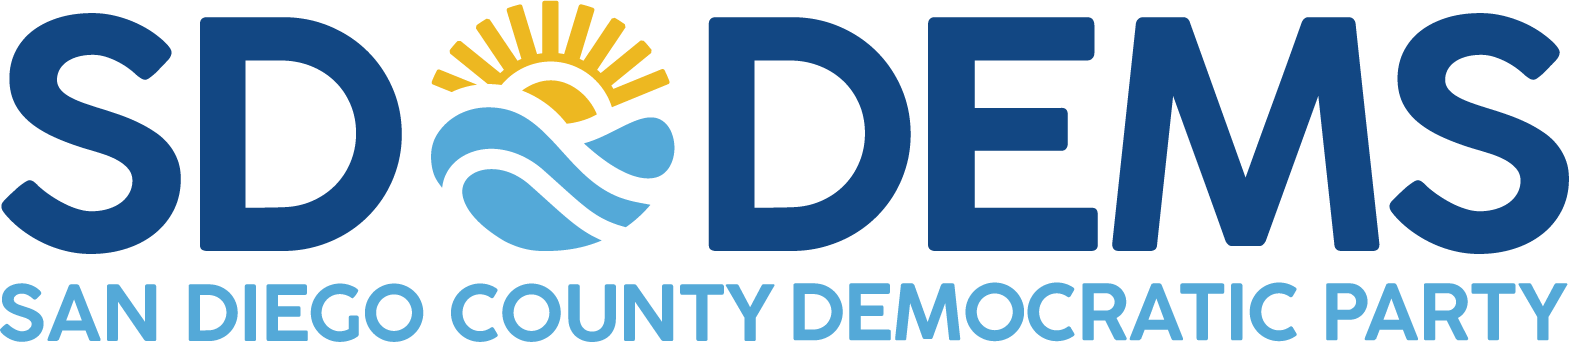 San Diego County Democratic Party (CA State Account)